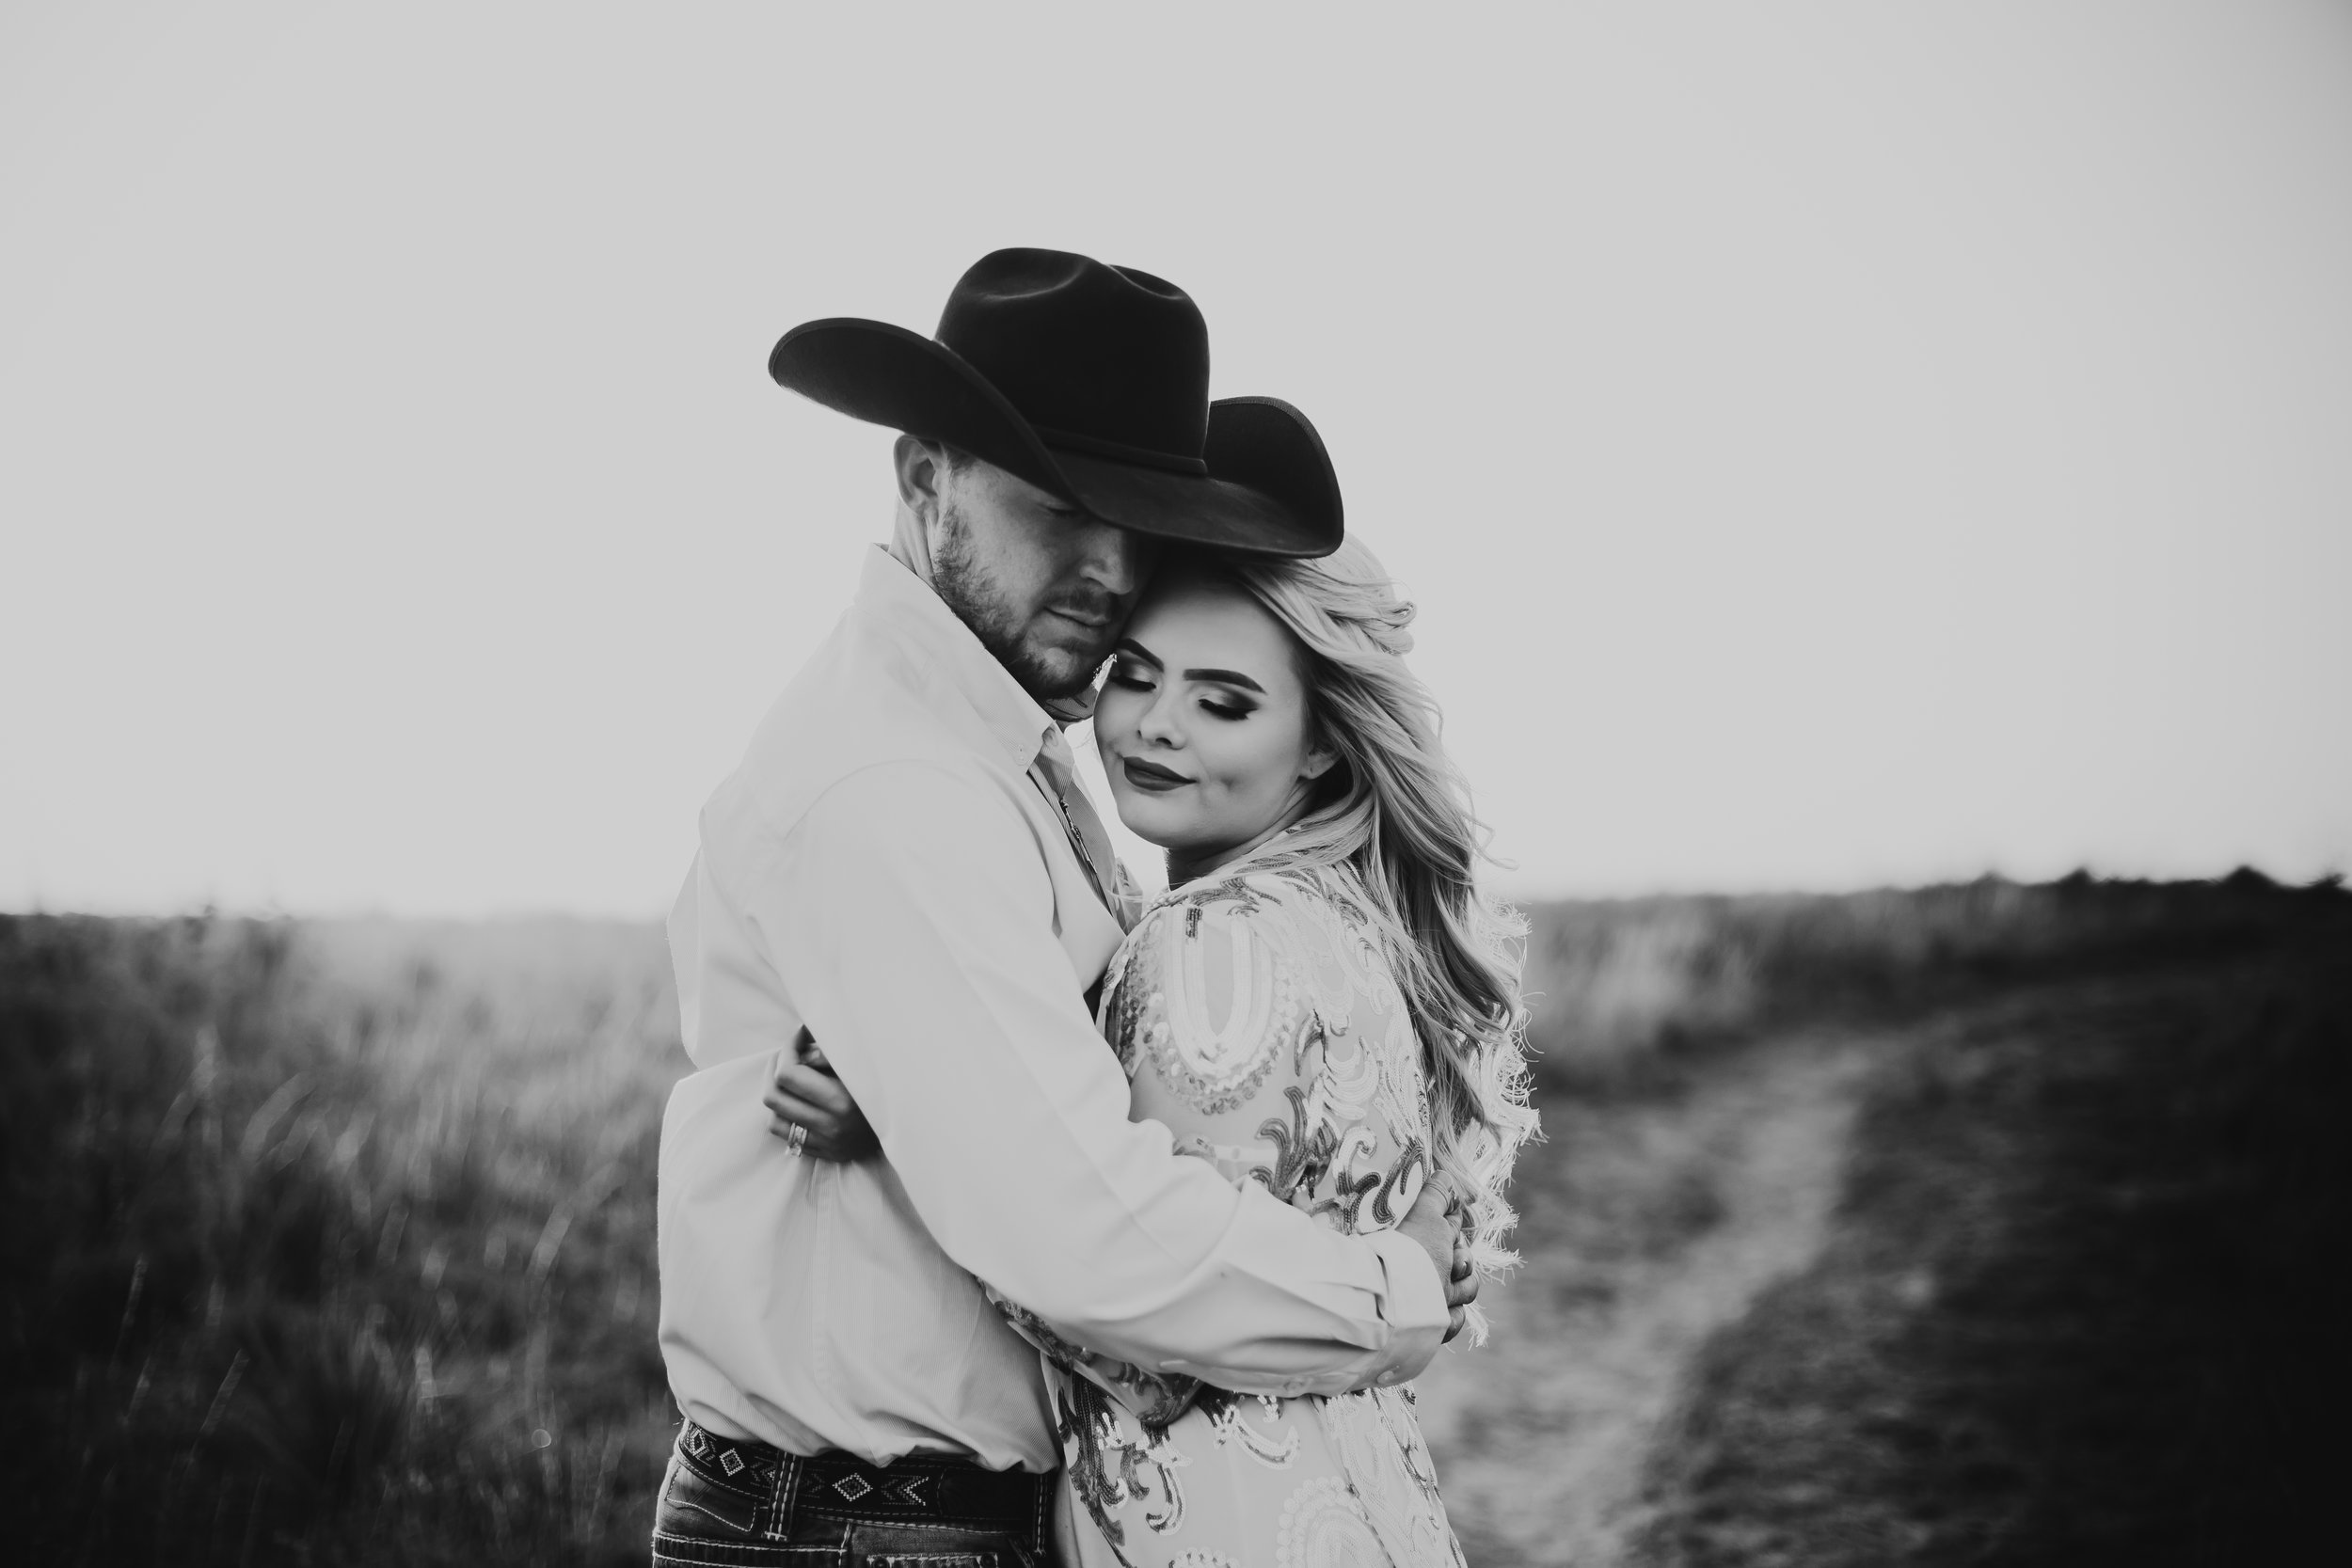 Black and white photo of engaged couple sharing an intimate embrace #engagementphotos #engaged #personality #amarillotexas #engagementphotographer #lifestylephotos #amarillophotographer #locationchoice #texasengagementphotos #engagment #tealawardphotography #westernstyle